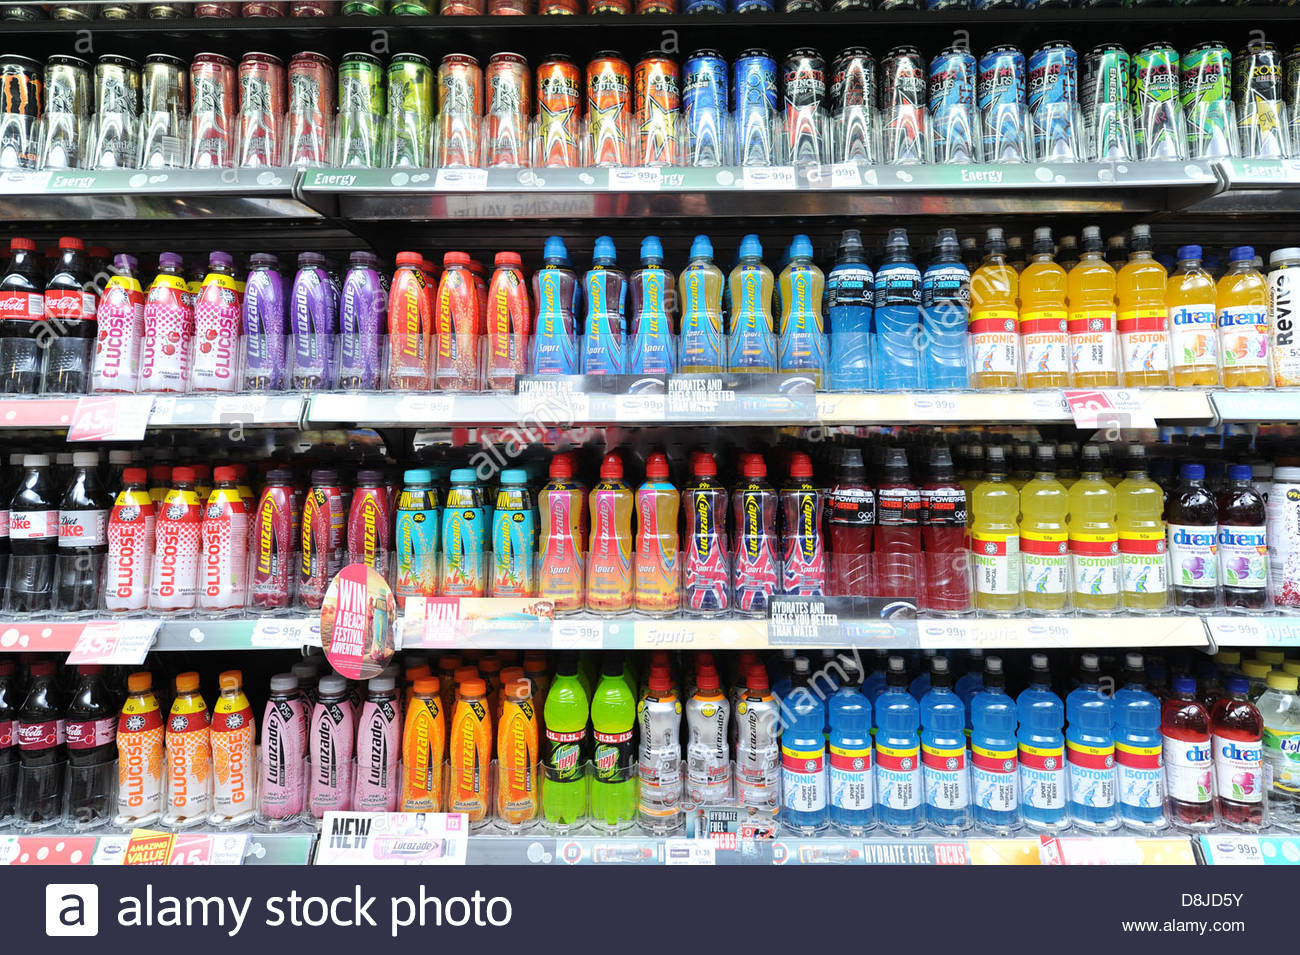 fizzy-drinks-on-a-shelf-on-display-at-a-